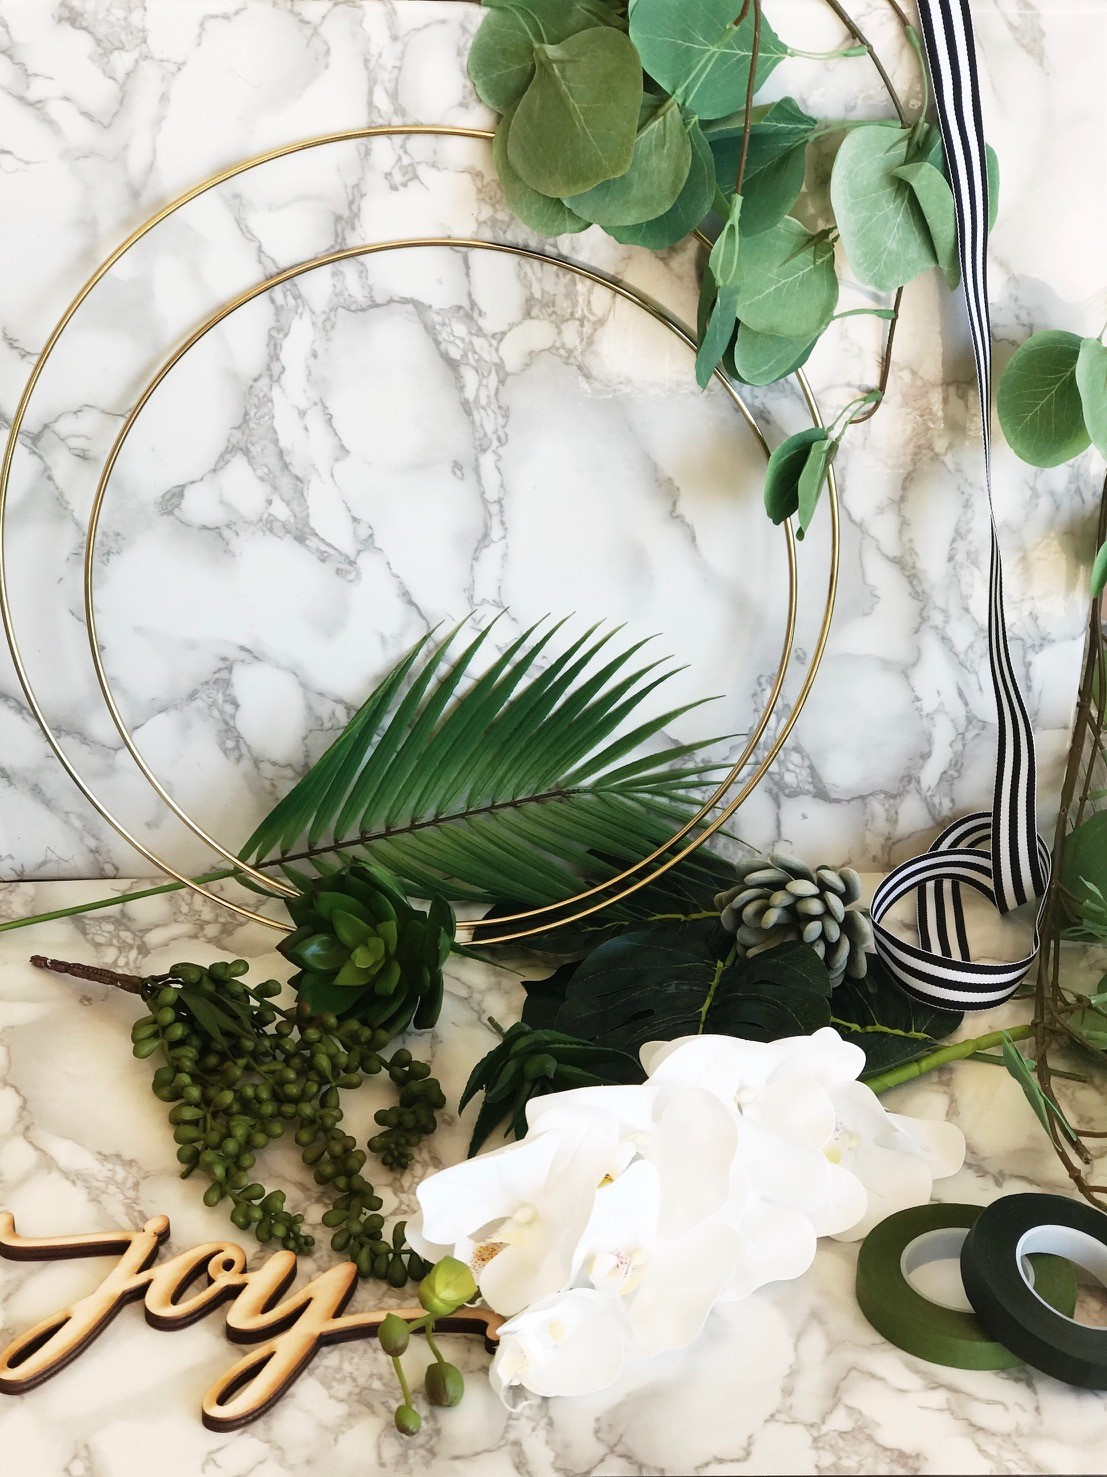 A DIY Tropical Wreath for Christmas - gathering all the equipment together